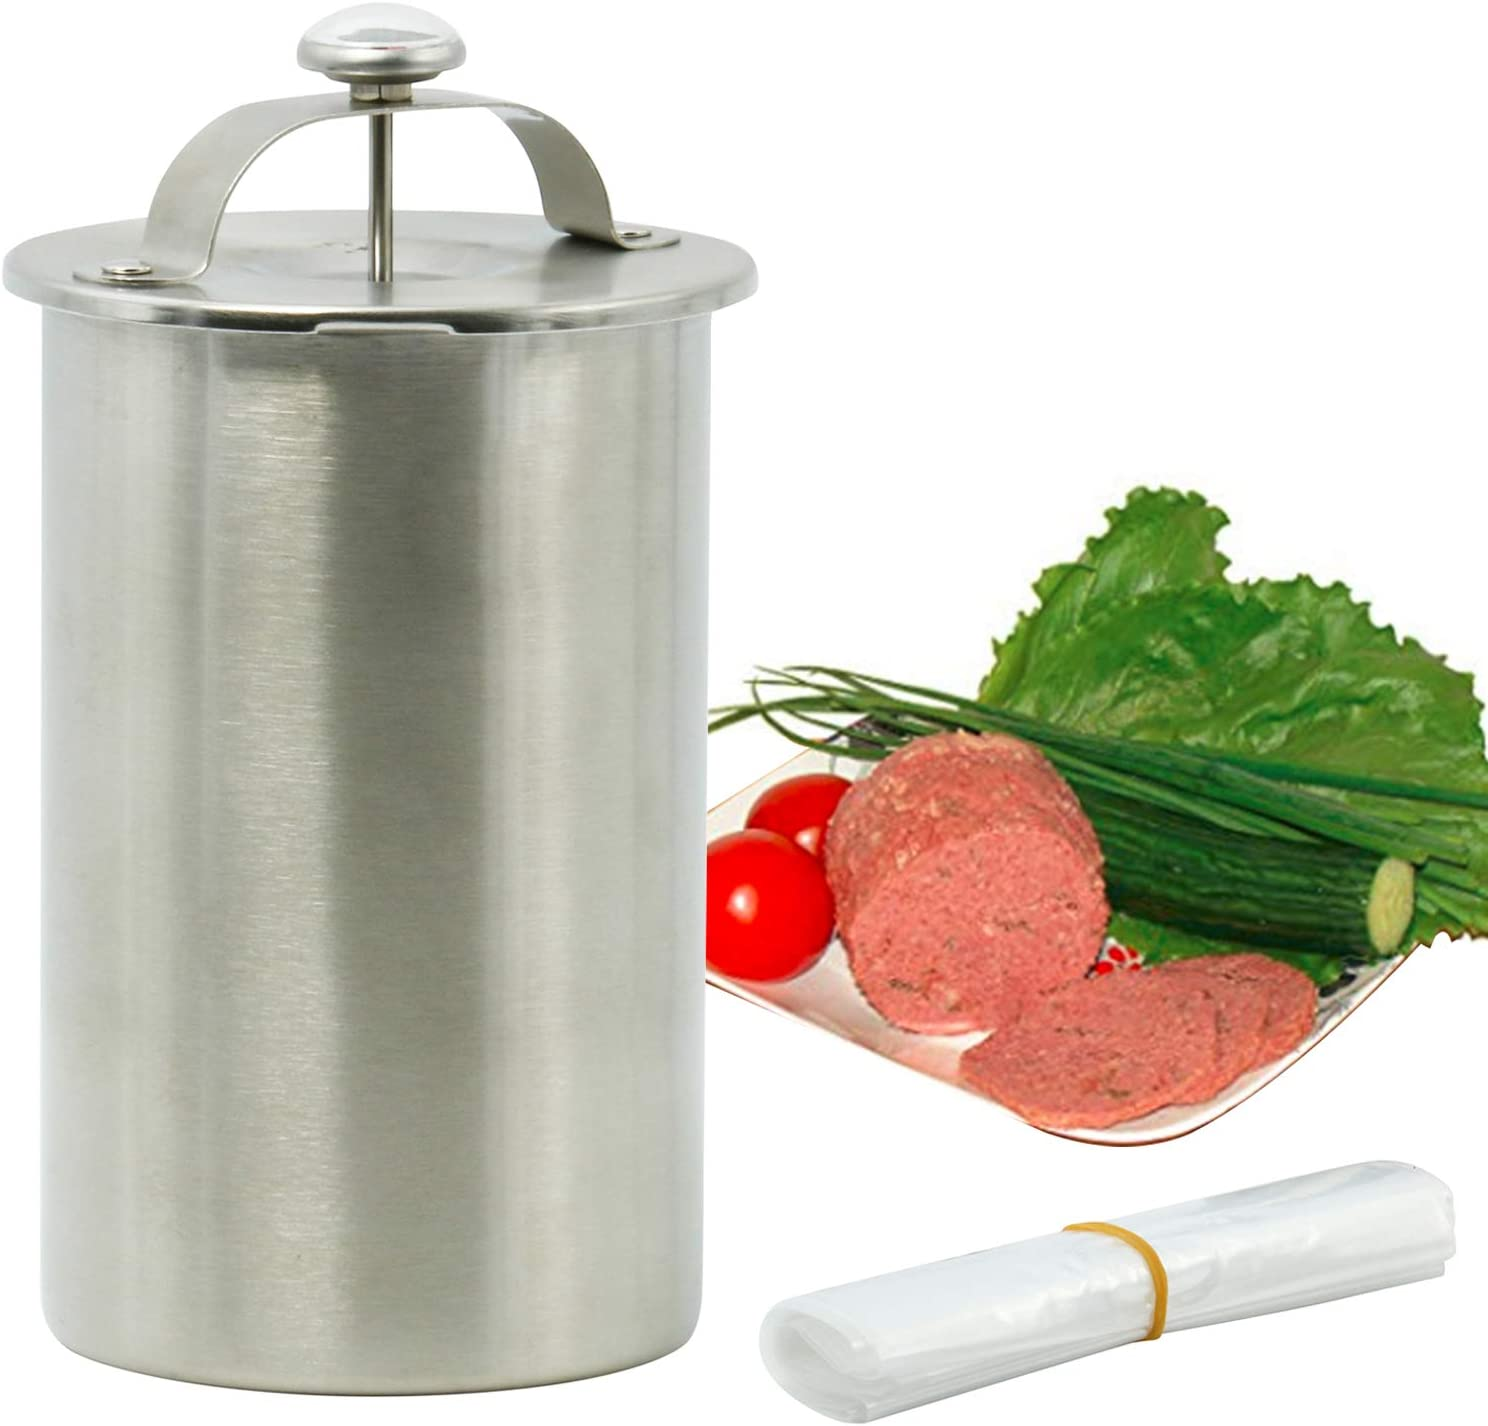 Homend Stainless Steel Meat Press for Making Healthy Homemade Deli Meat with Thermometer,Include 20 PCS Cooking Bags